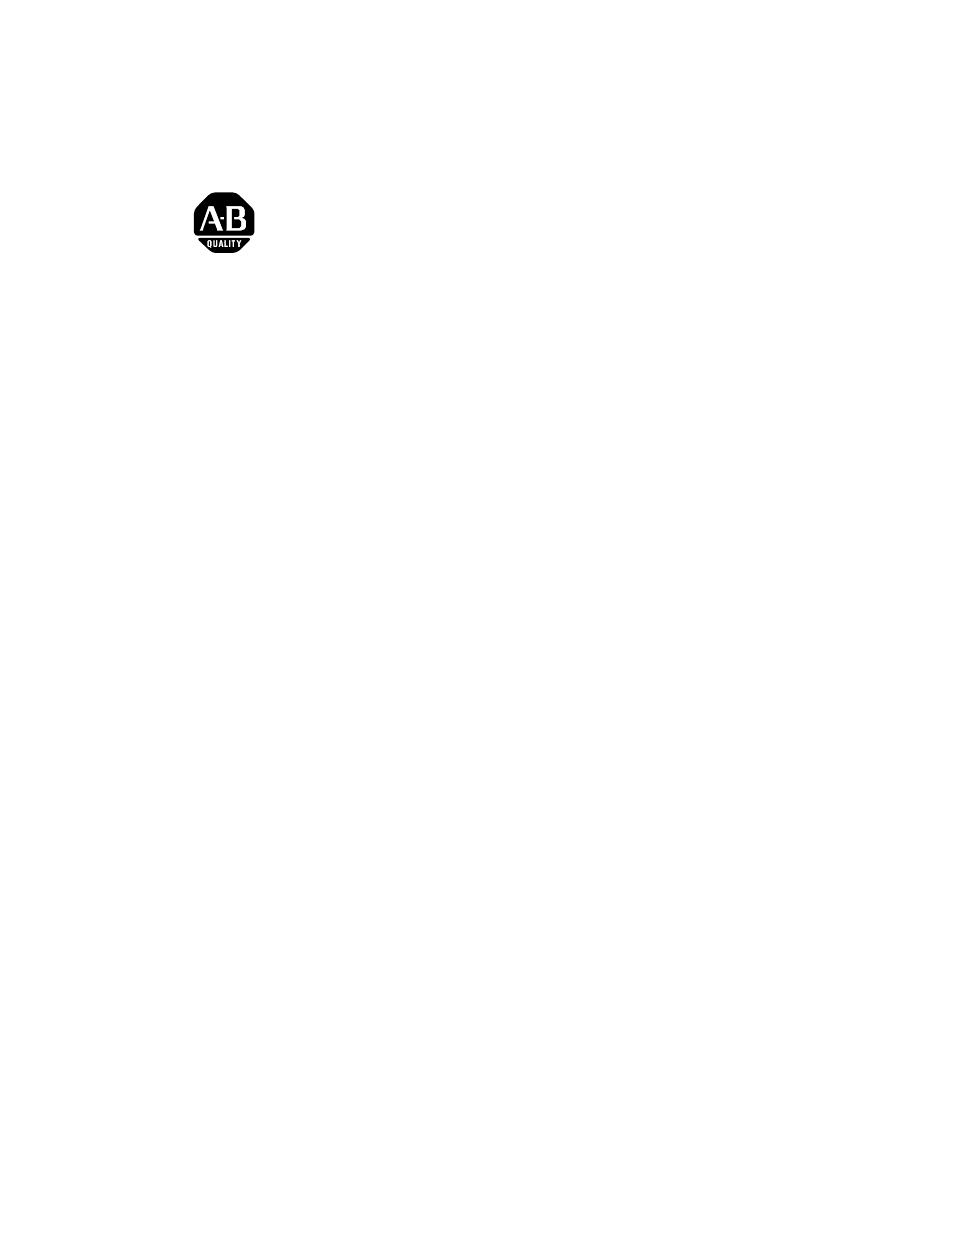 hight resolution of rockwell automation 2711p cbl ex04 ethernet crossover cable install user manual 8 pages